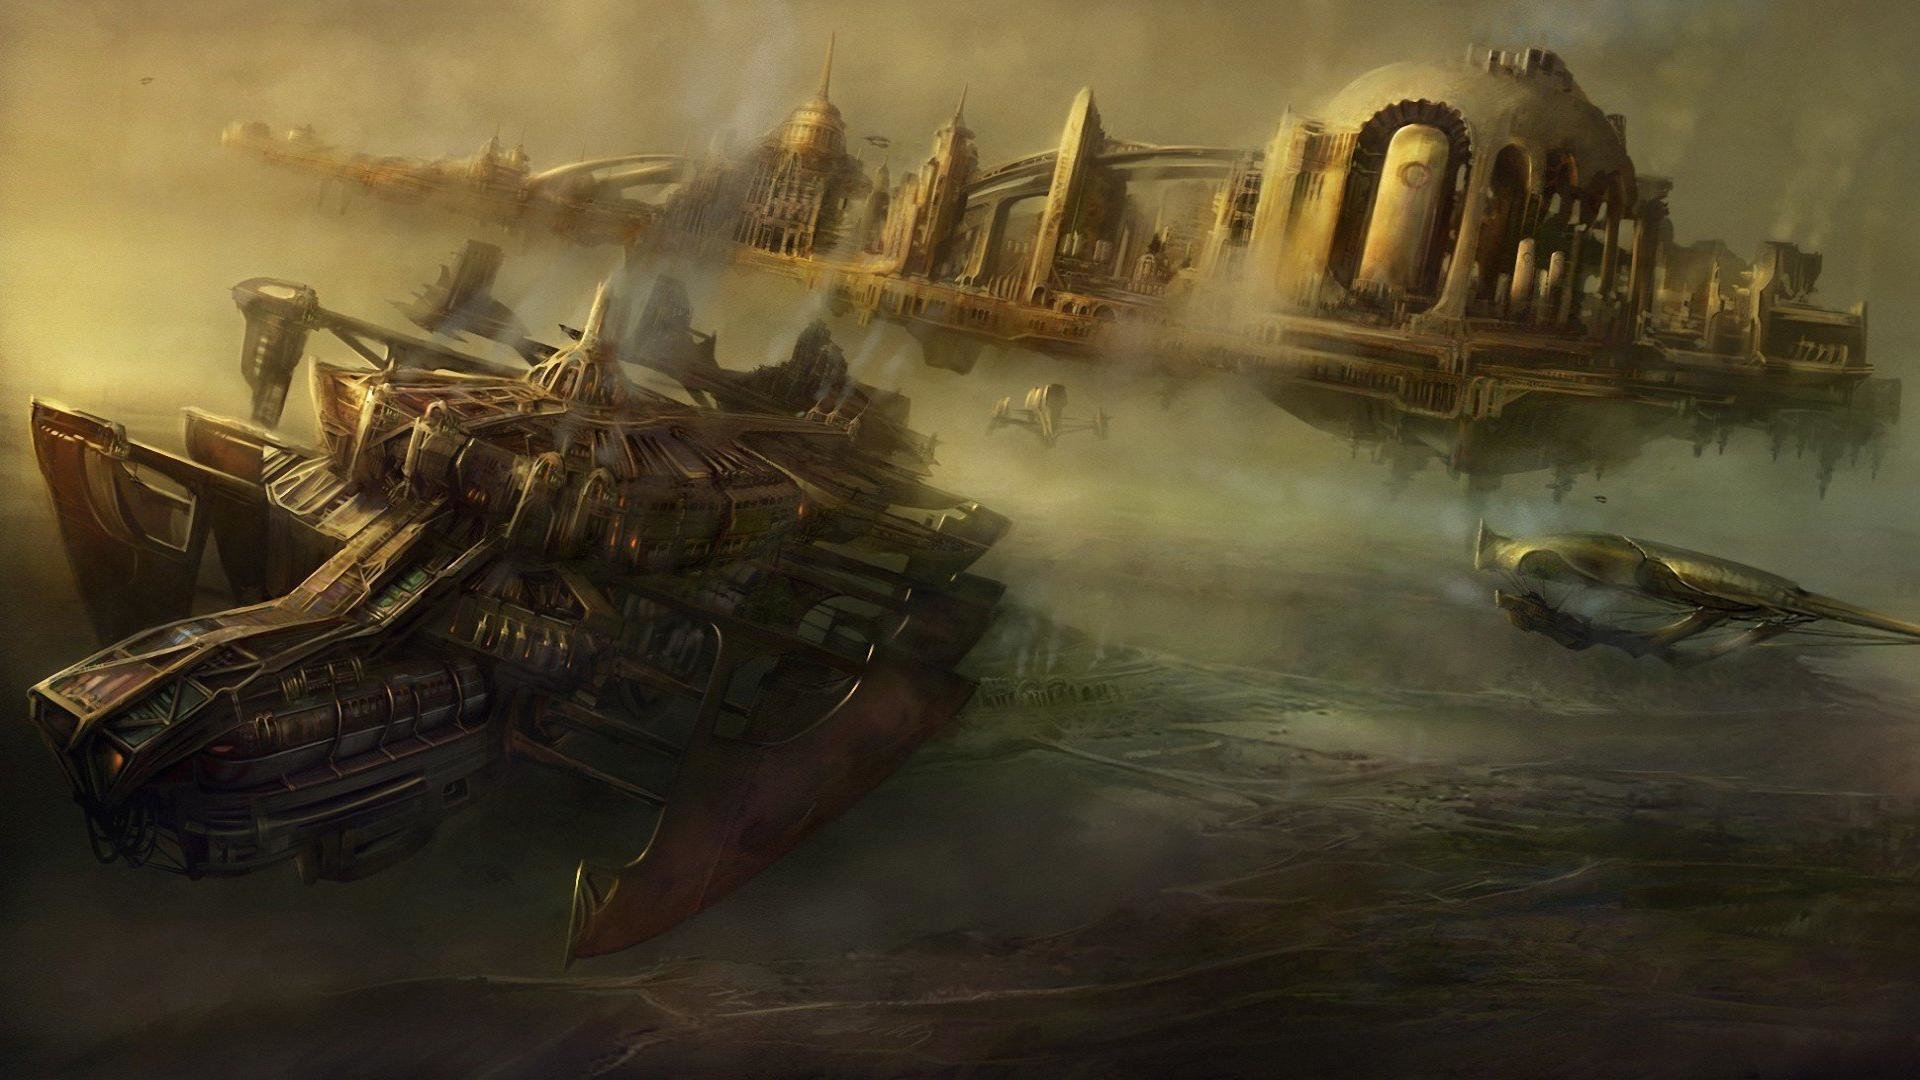 Best Steampunk Wallpaper Id 10542 For High Resolution 1080p Computer